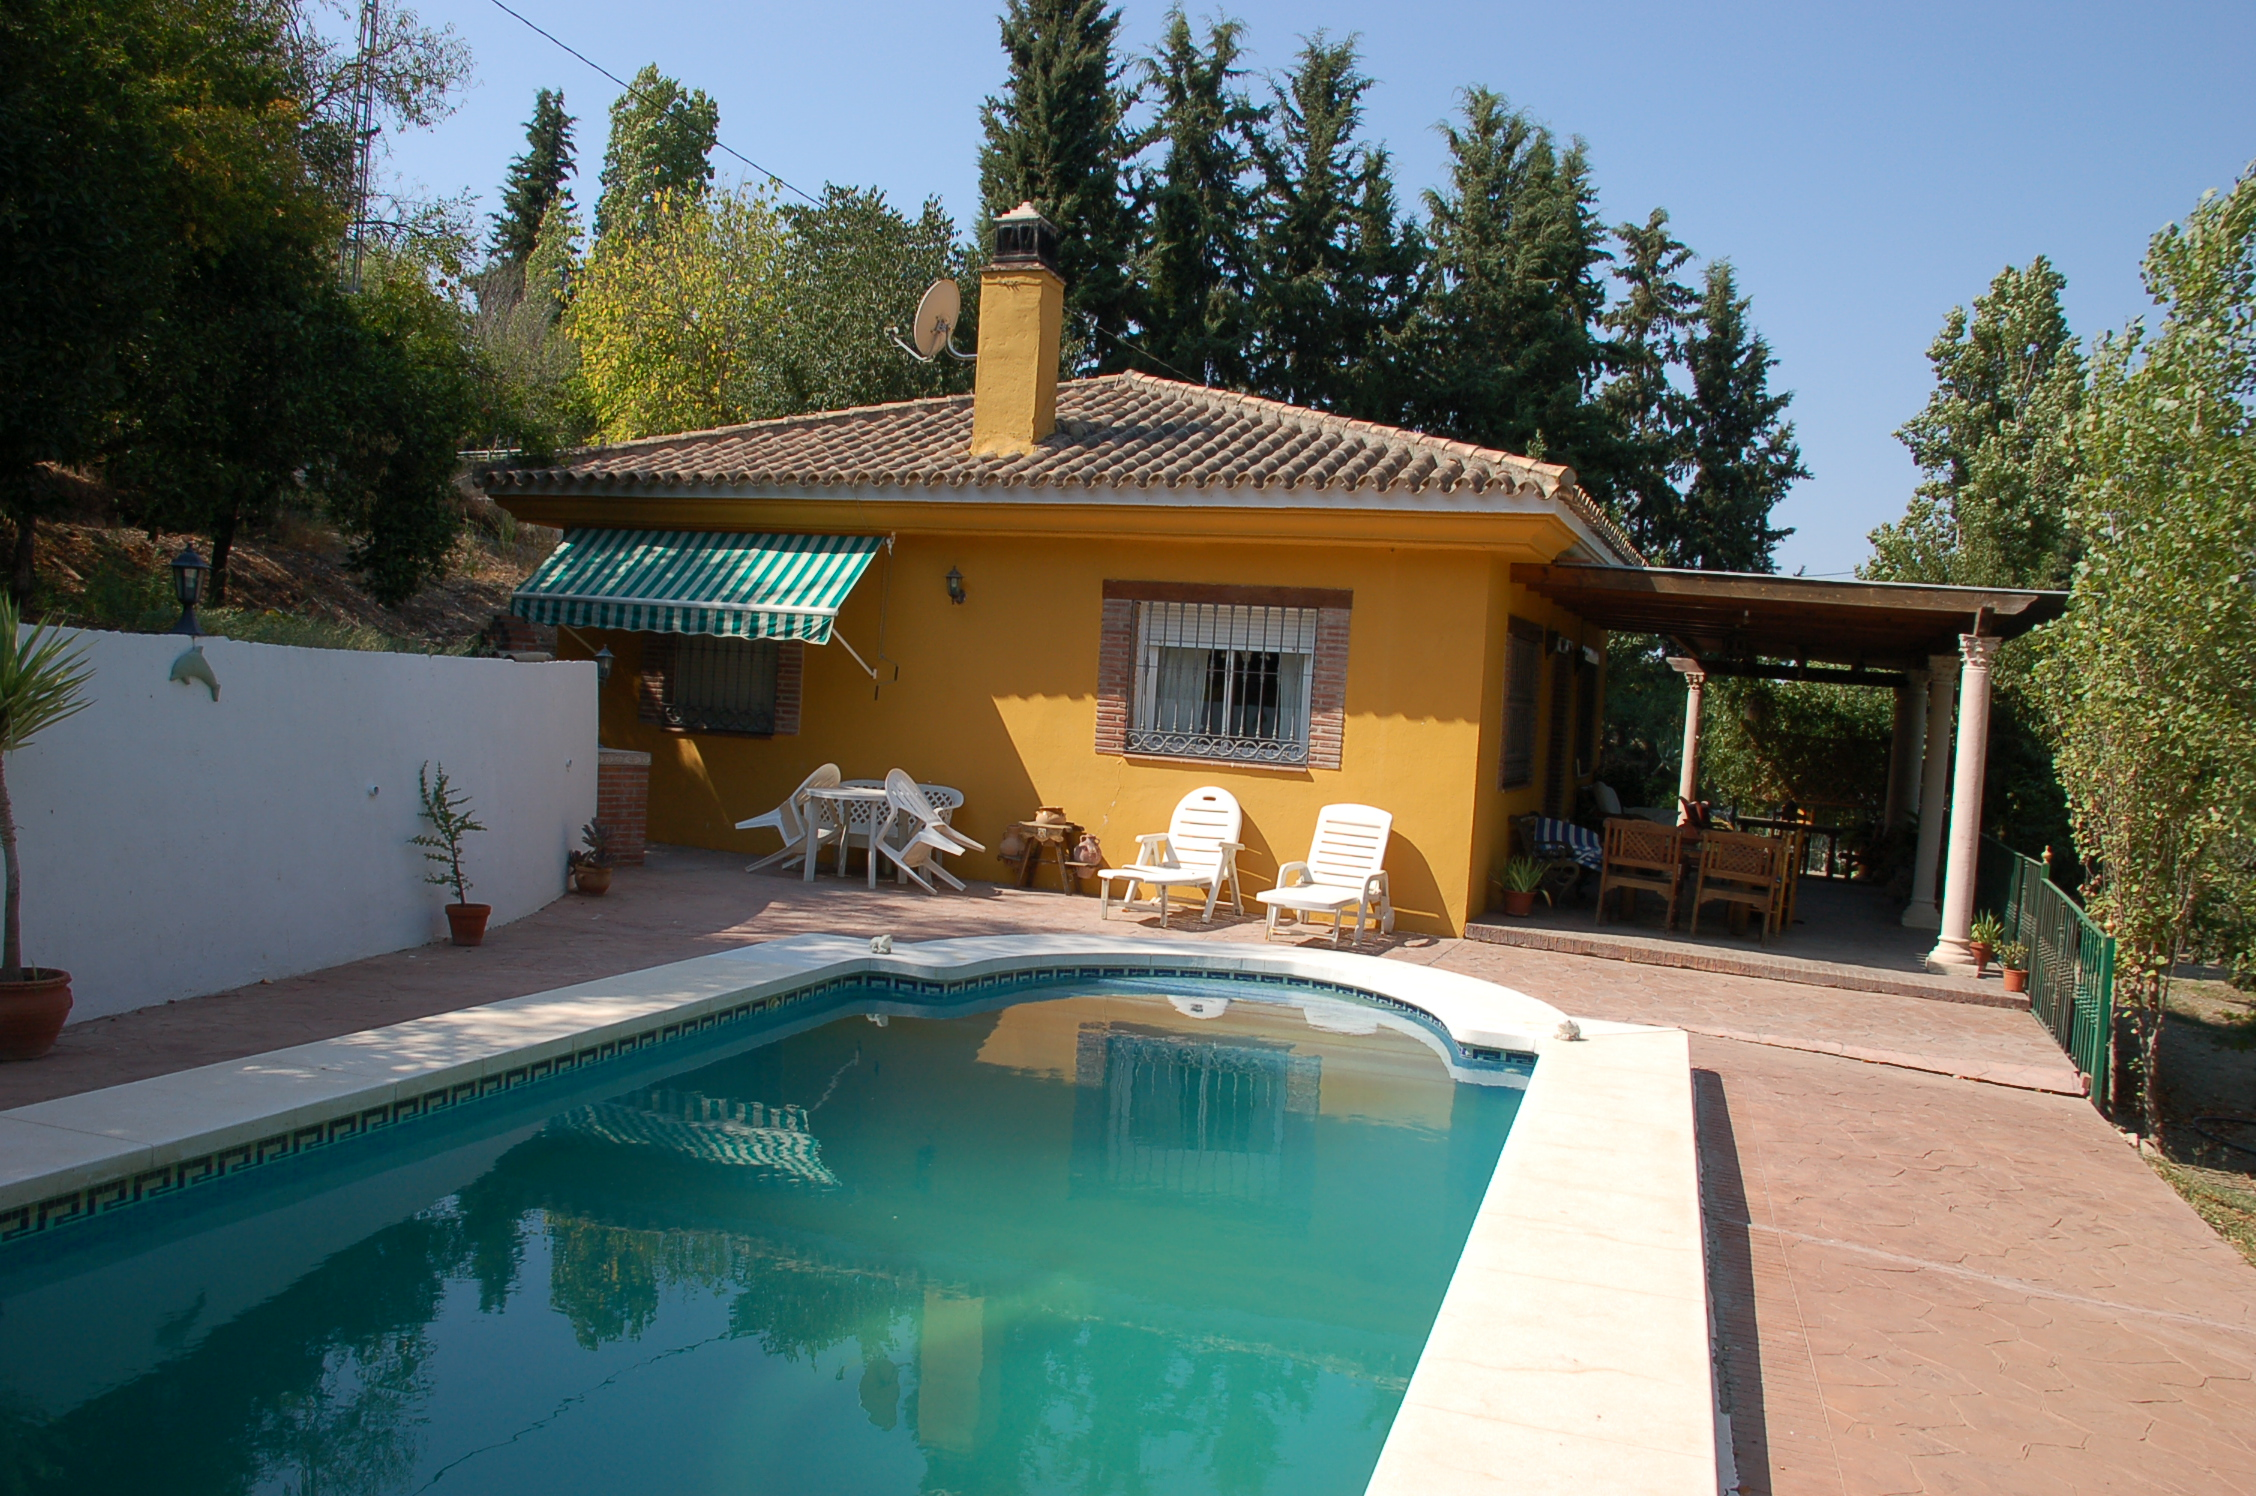 RiS 209 Beautiful rural finca with pool in Coin countryside – 212,000€